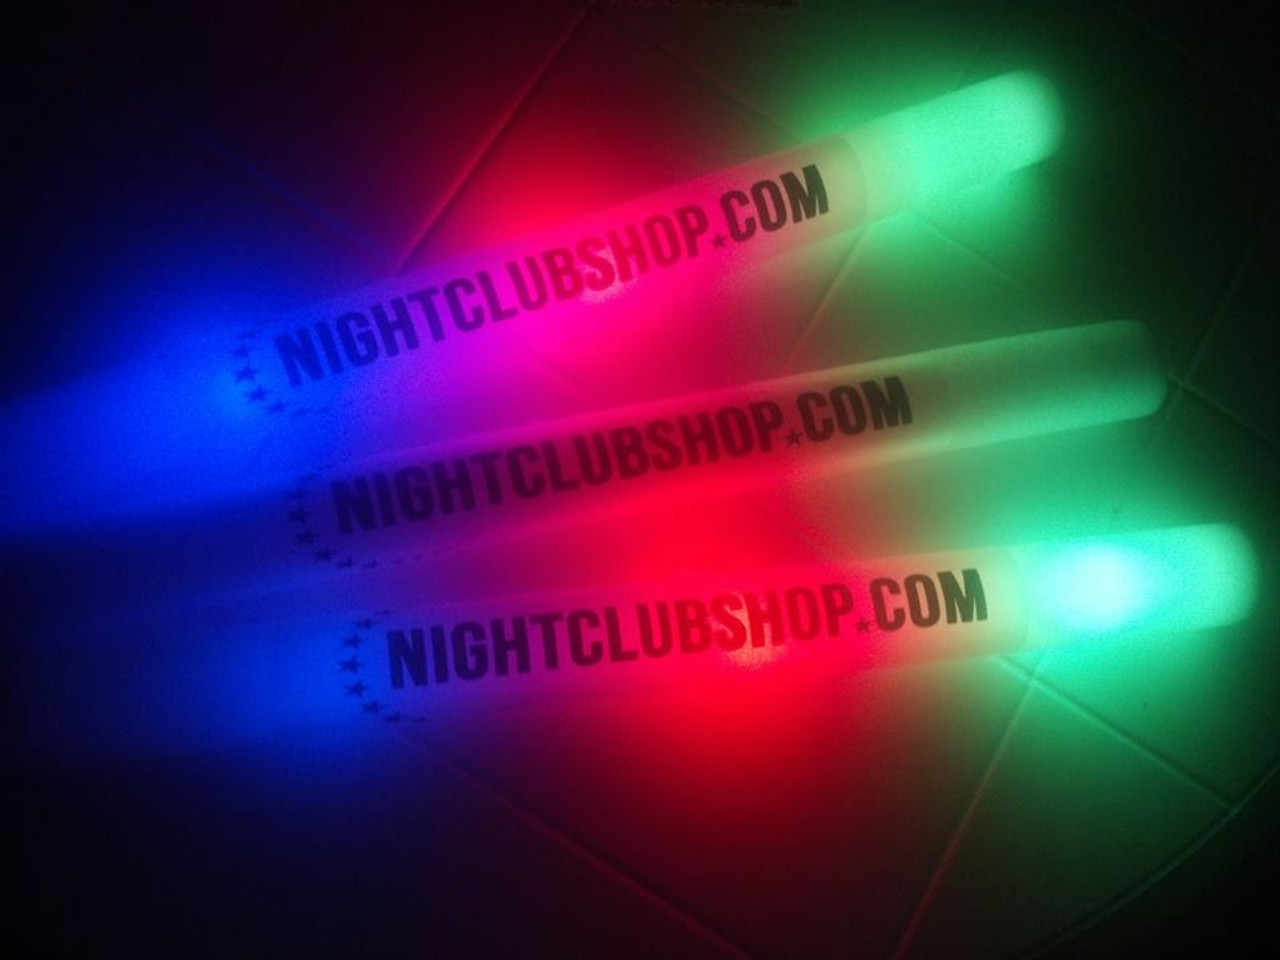 LED FOAM STICK, Led, Foam, Stick, Baton, Lumiton, Glow, Electronic, Light, Stix, Rave, EDM, Palito, Palo, UV, Illuminate, luminoso, luz, Electro, stic, FoamStick, LEDFOAMSTICK,